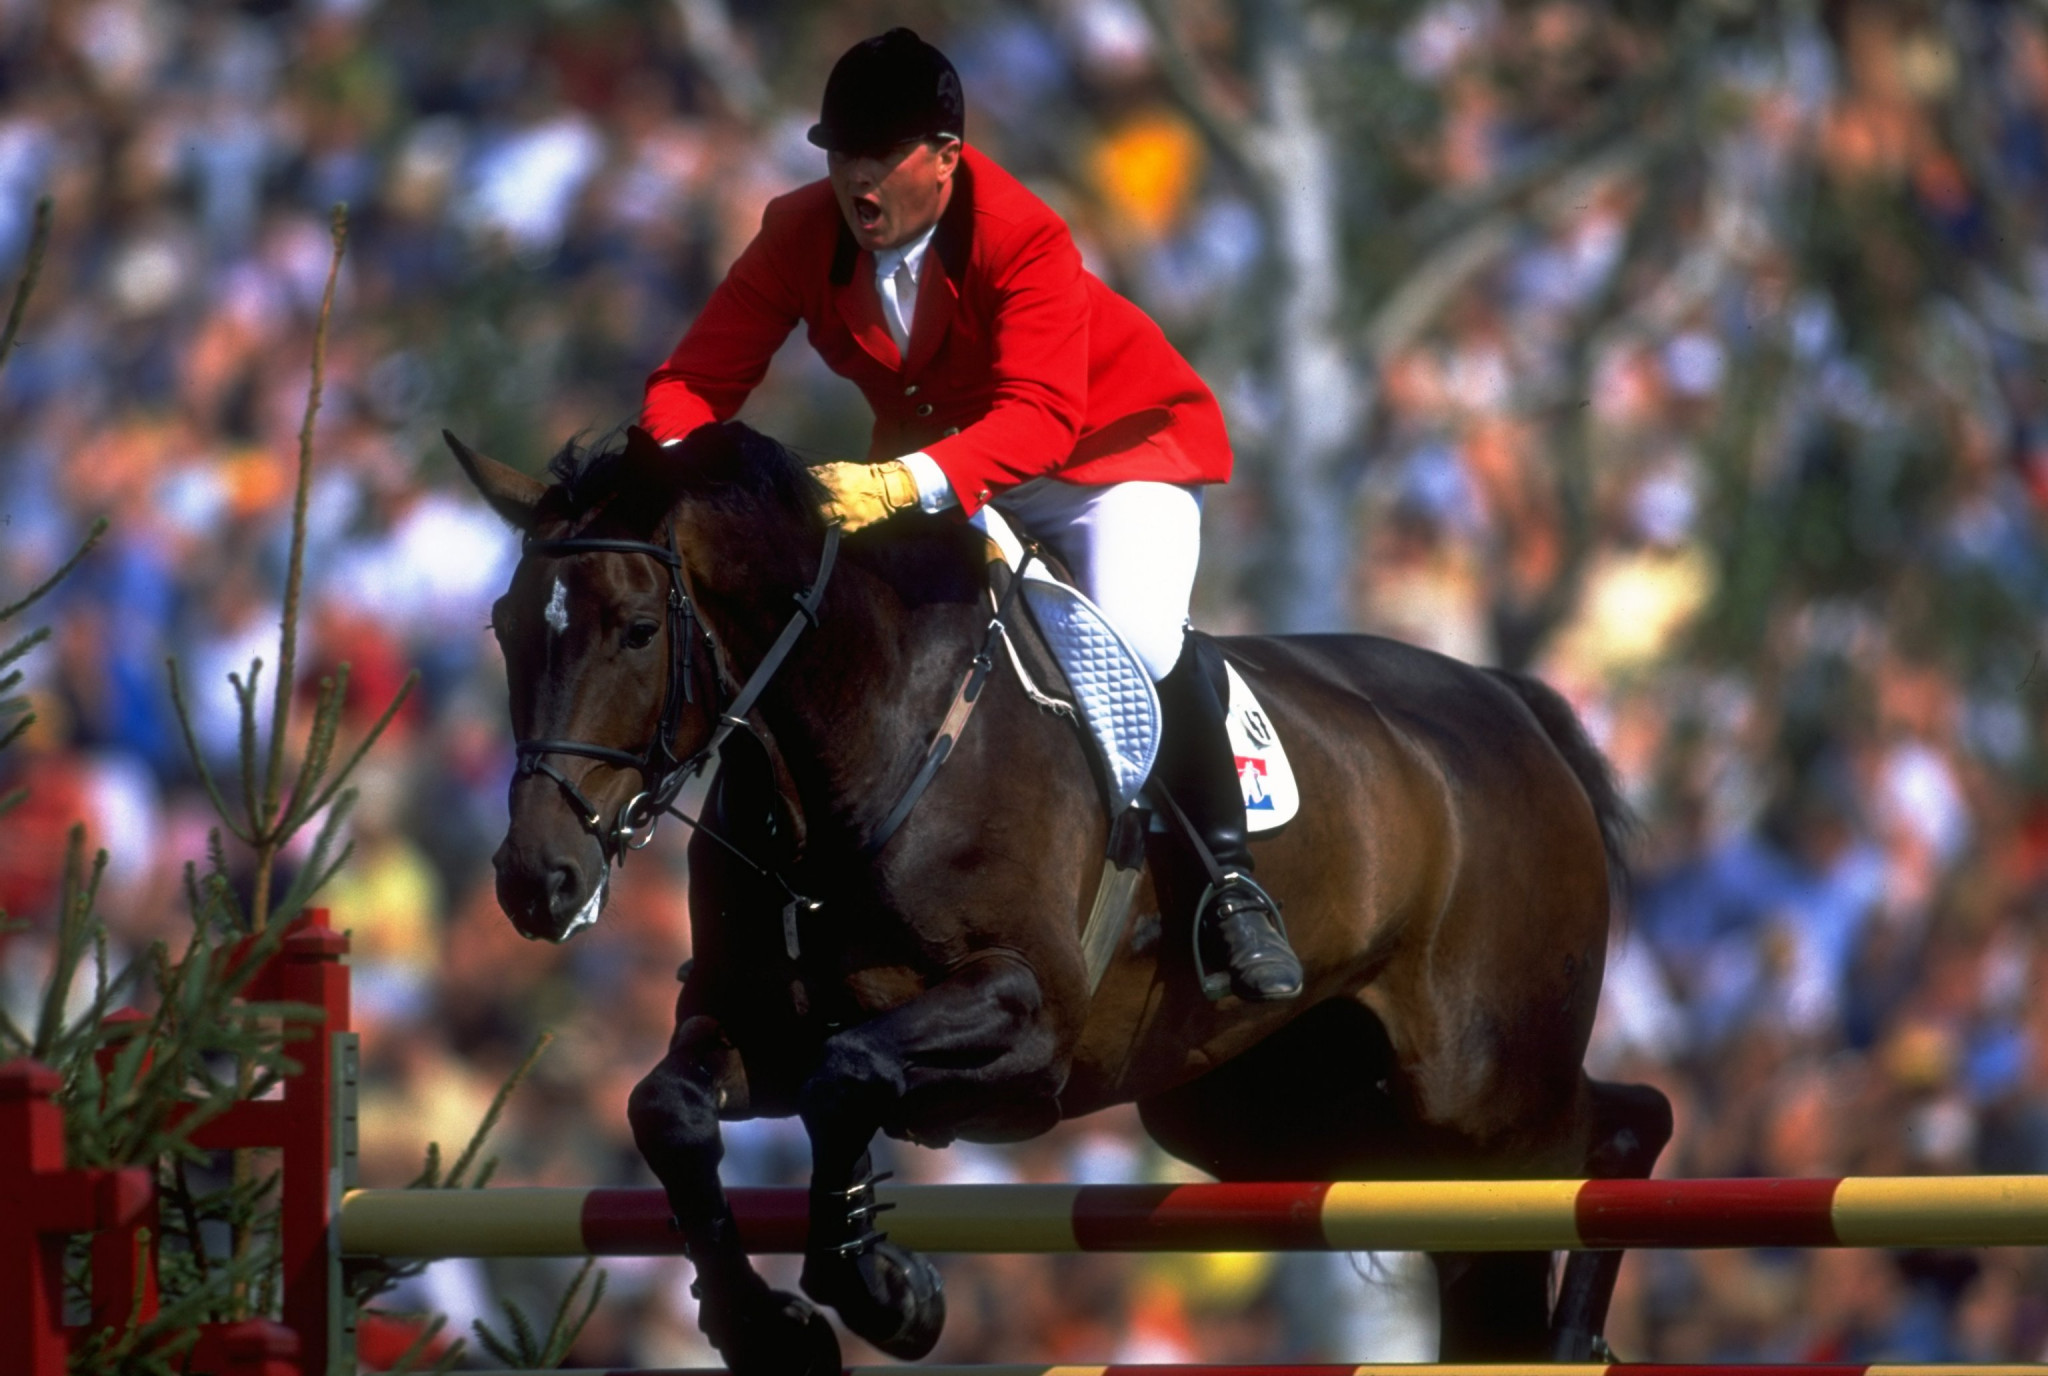 Former Olympic champion and LGCT President Jan Tops said he was